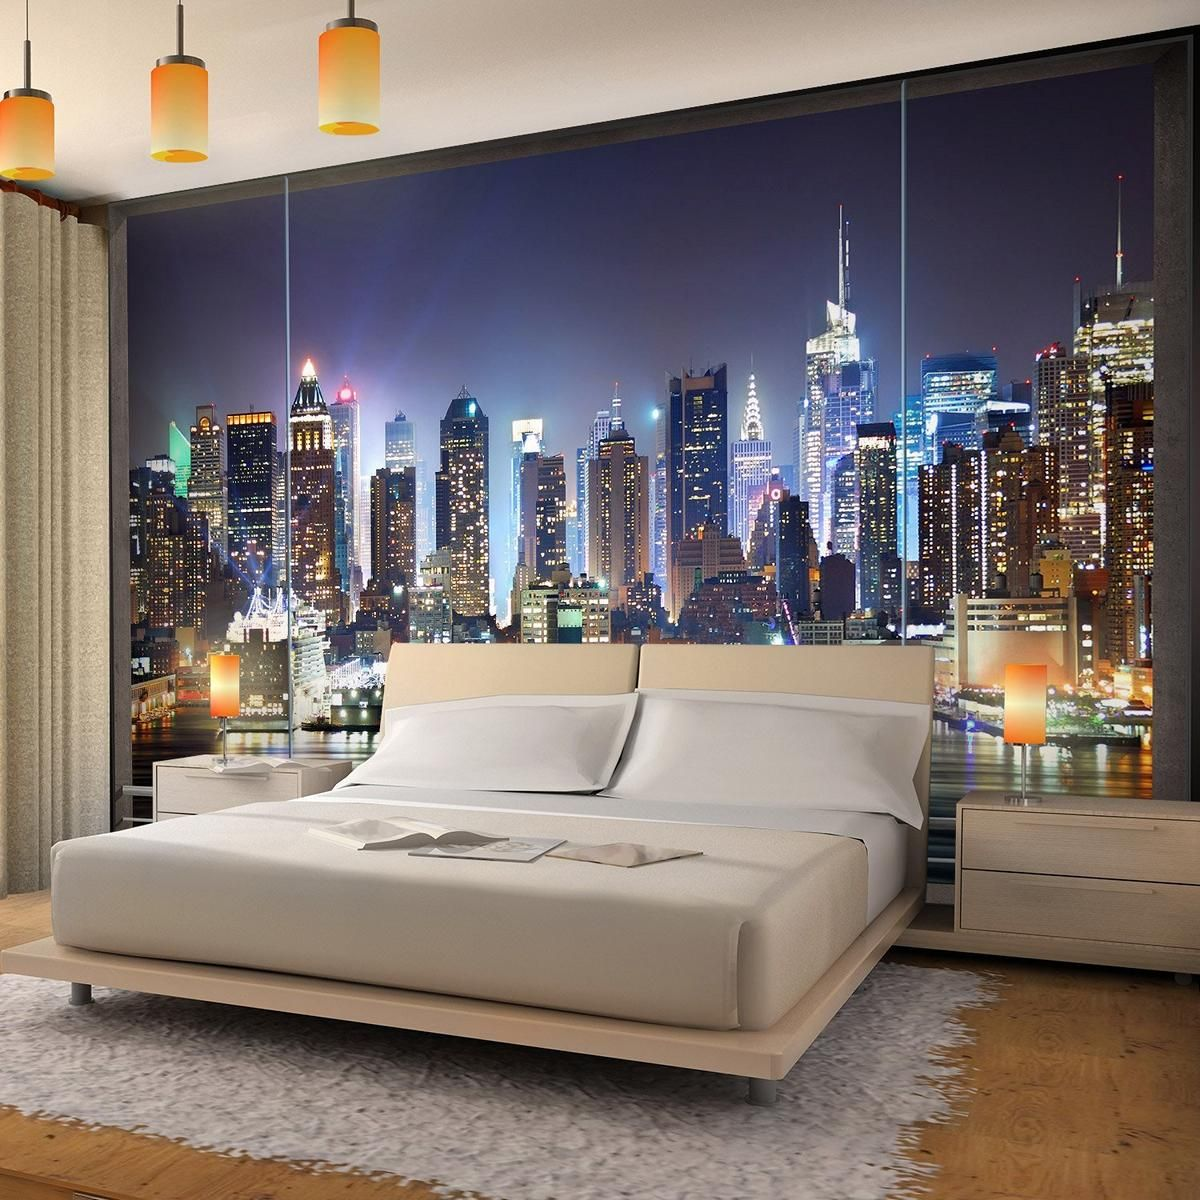 New Skyline Wandtapete Vlies Fototapete Fenster Nach New York 主题酒店 Pinterest